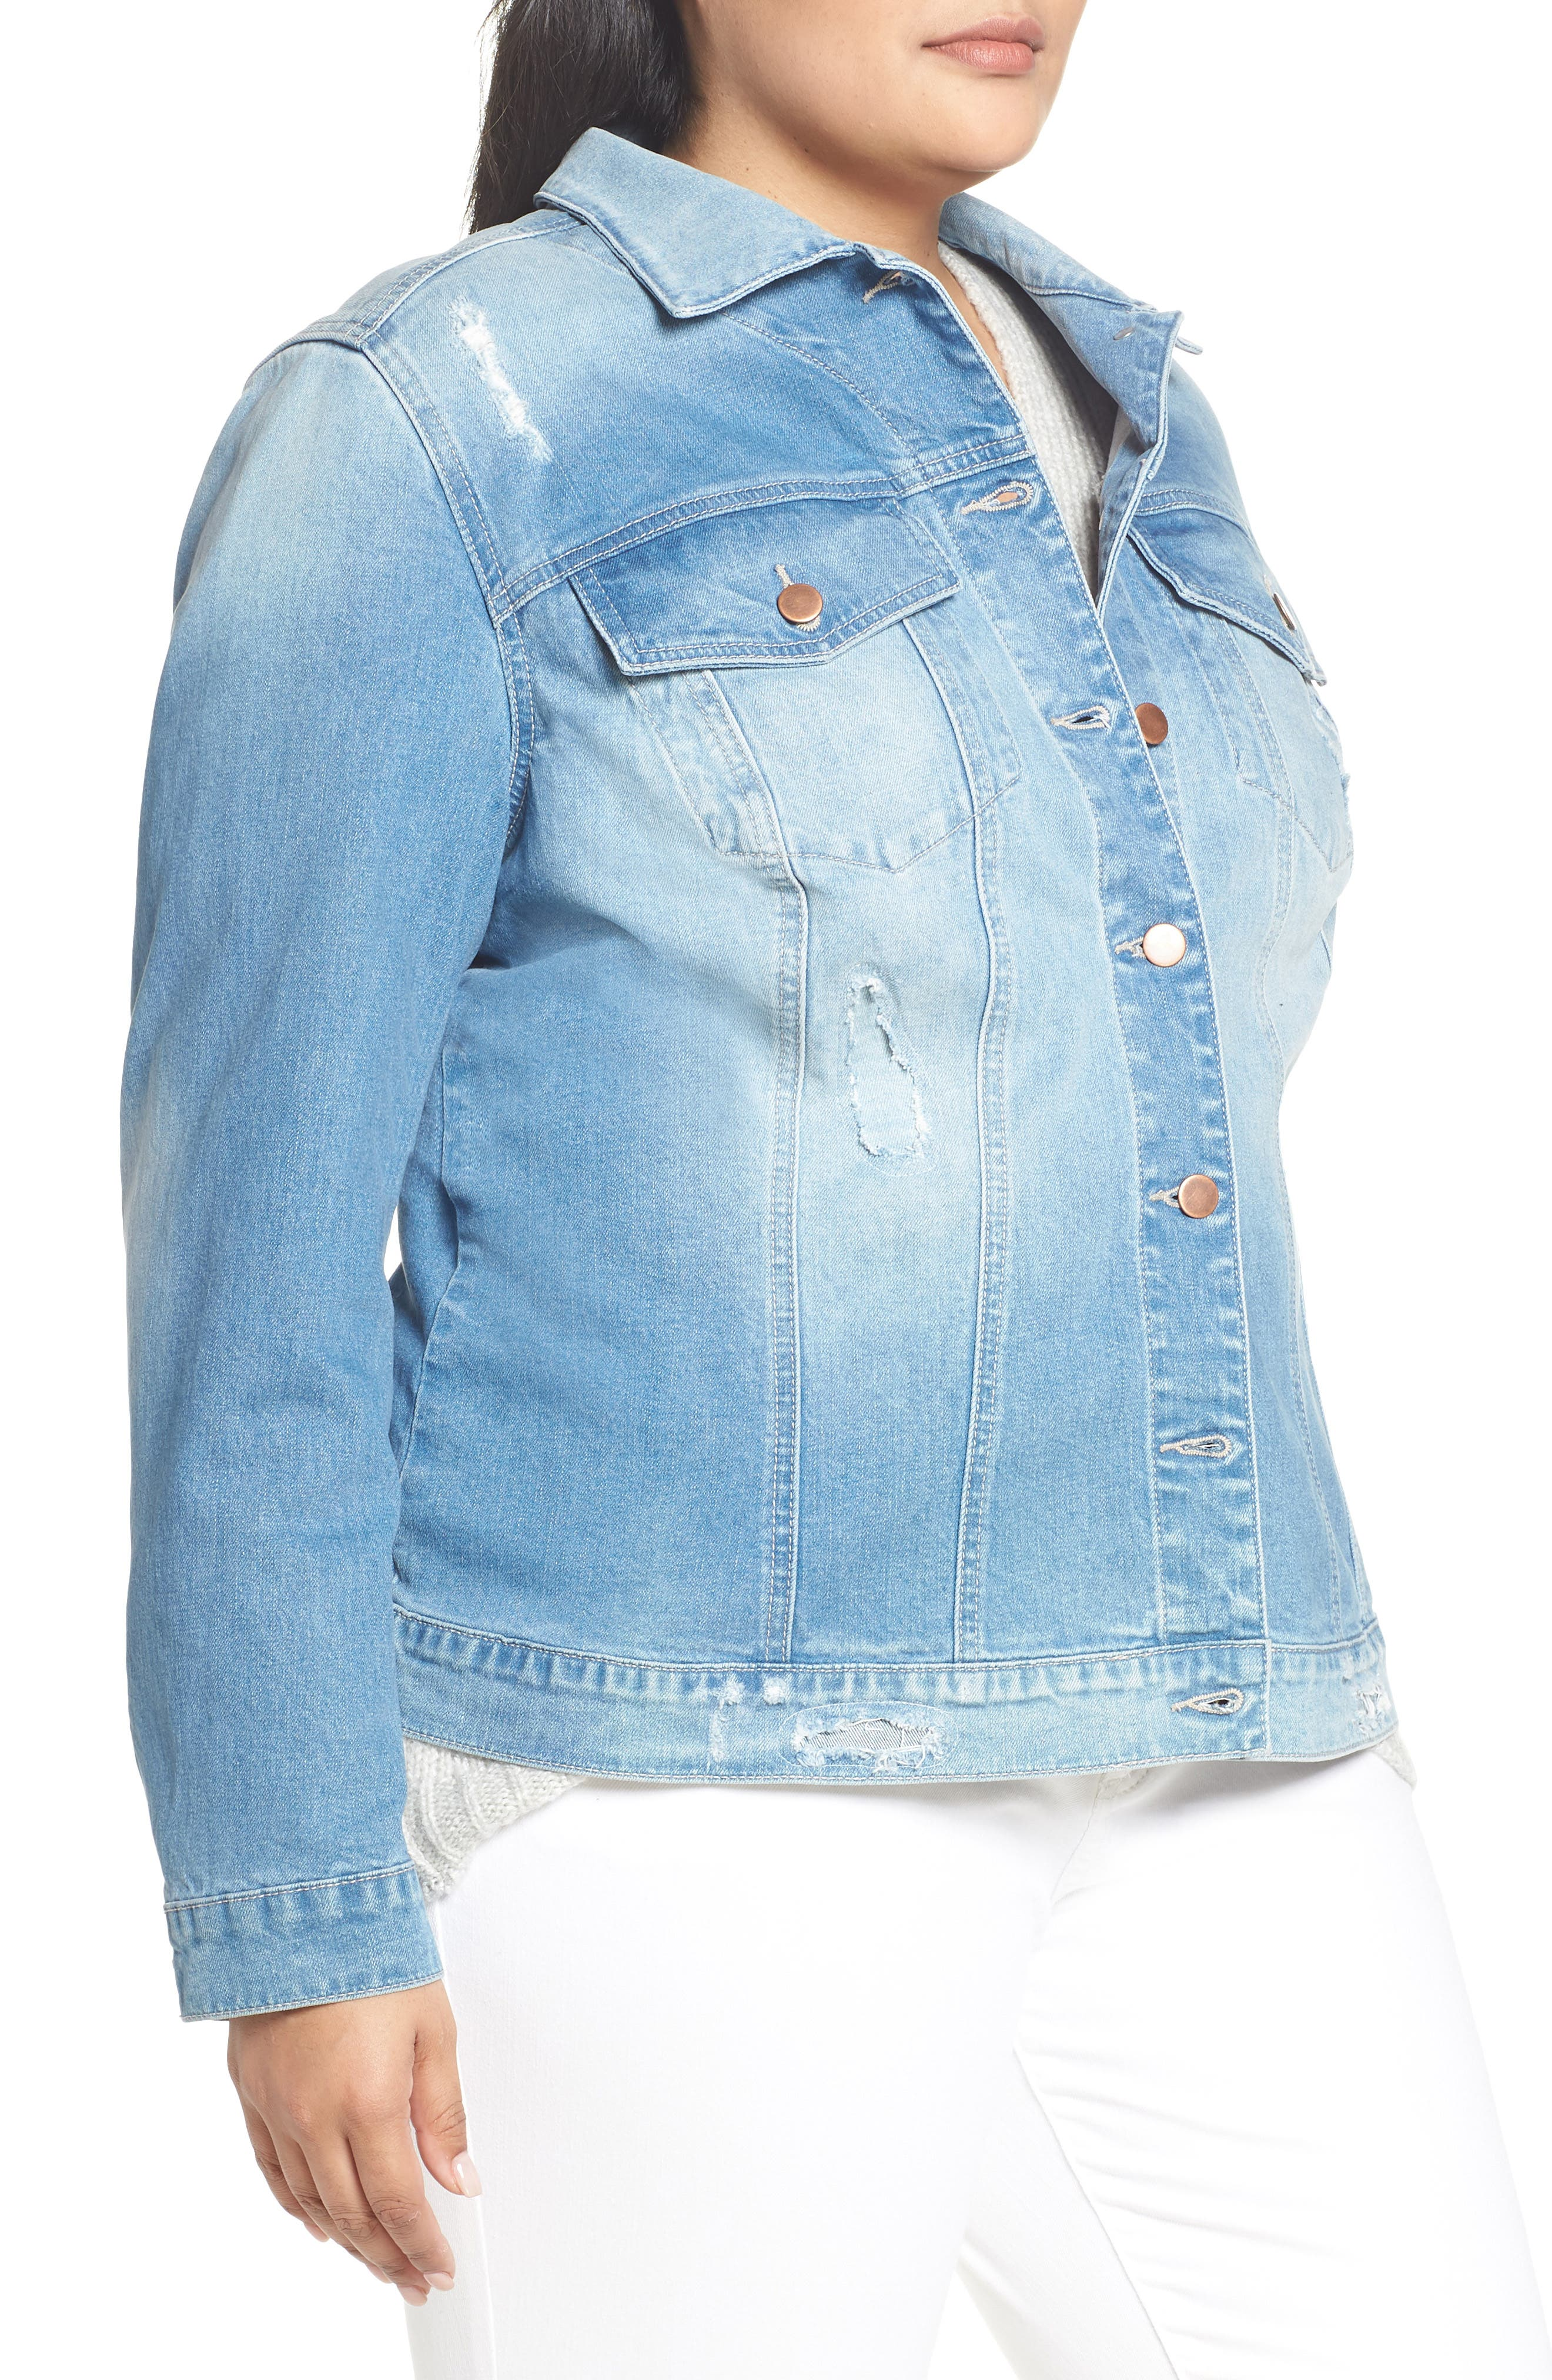 KUT FROM THE KLOTH,                             Lily Basic Denim Jacket,                             Alternate thumbnail 4, color,                             ADORN